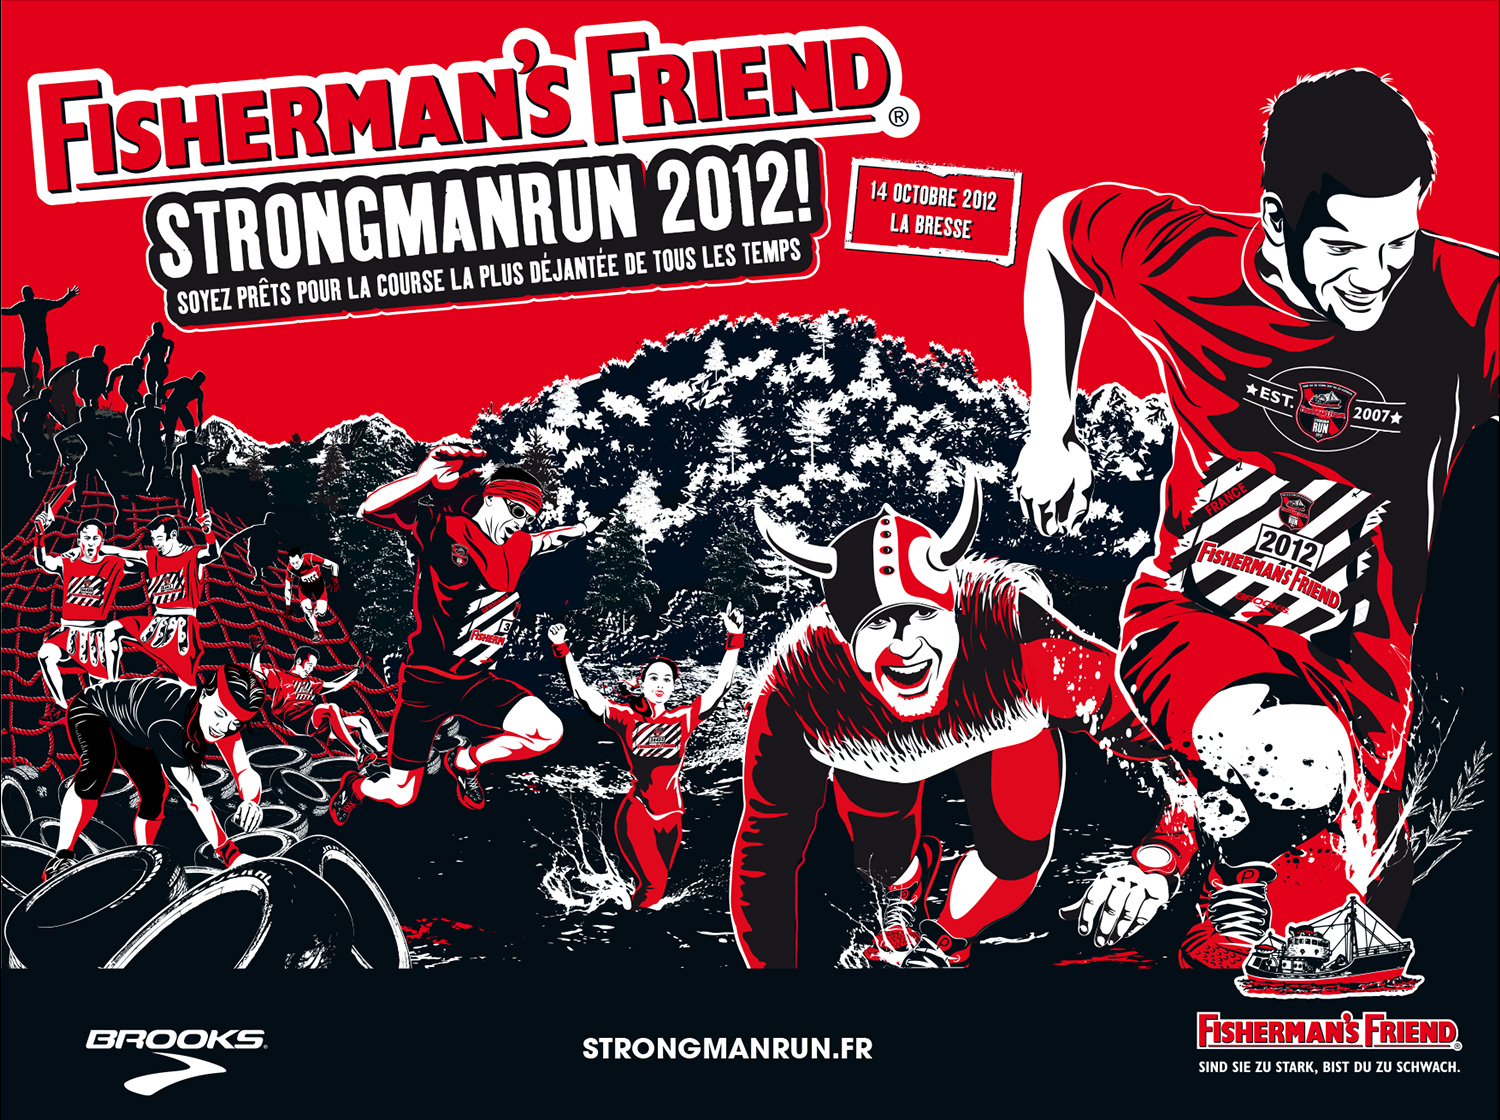 rbtq_Illustration_Seiser_Illustratorin_Hamburg_Strongmanrun_Print_Design_Keyvisual_Fishermans_02.jpg